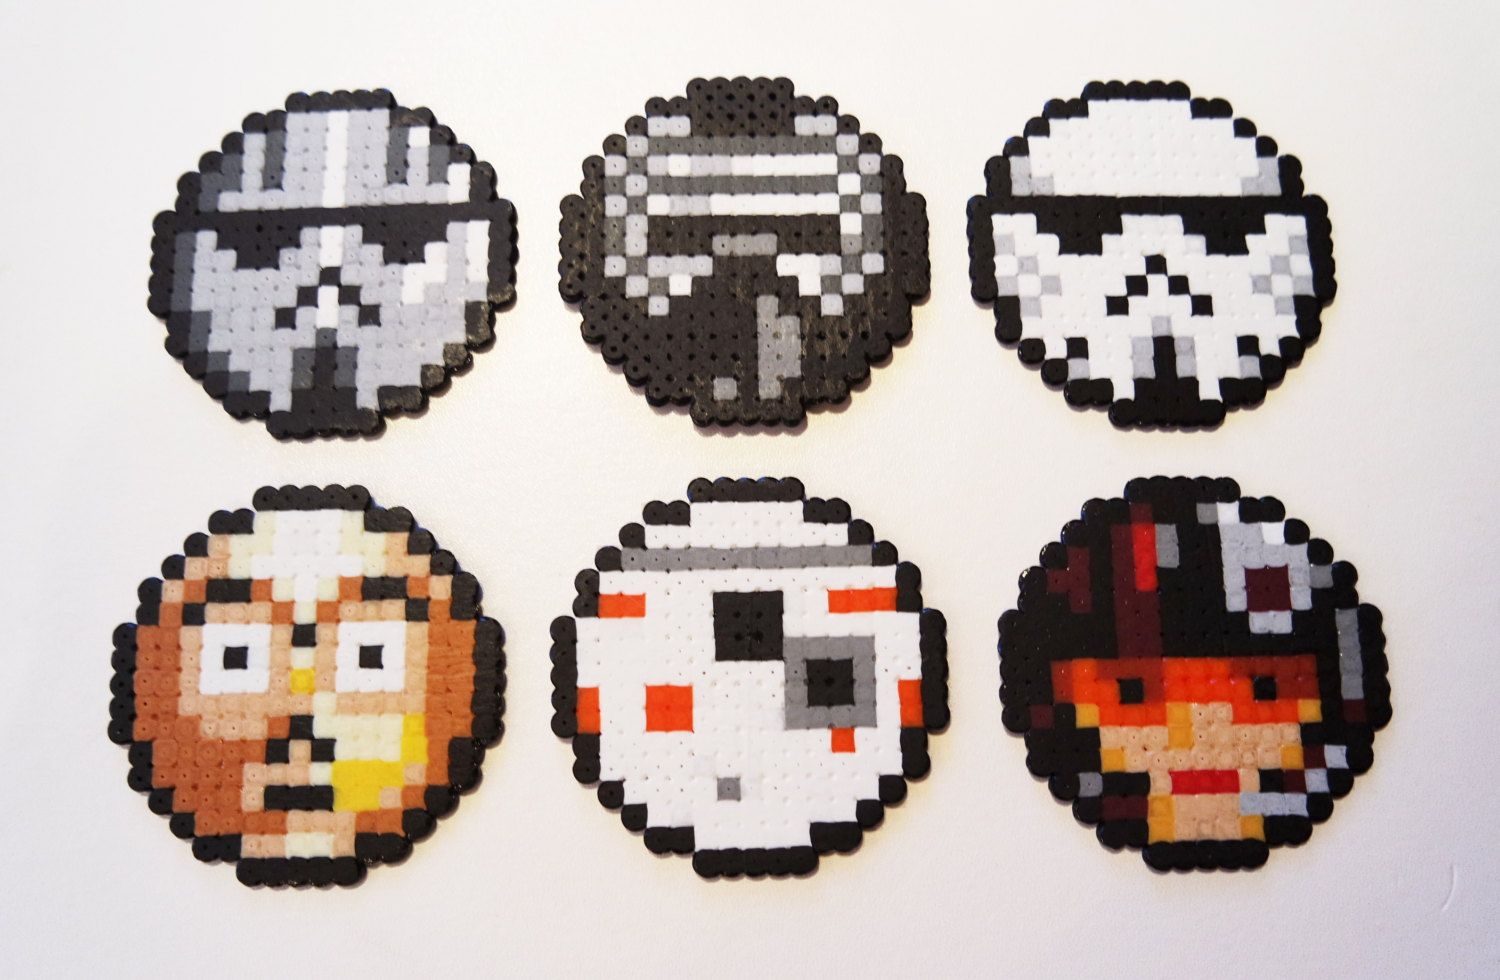 Star Wars: The Force Awakens coaster set hama beads by PixelWill